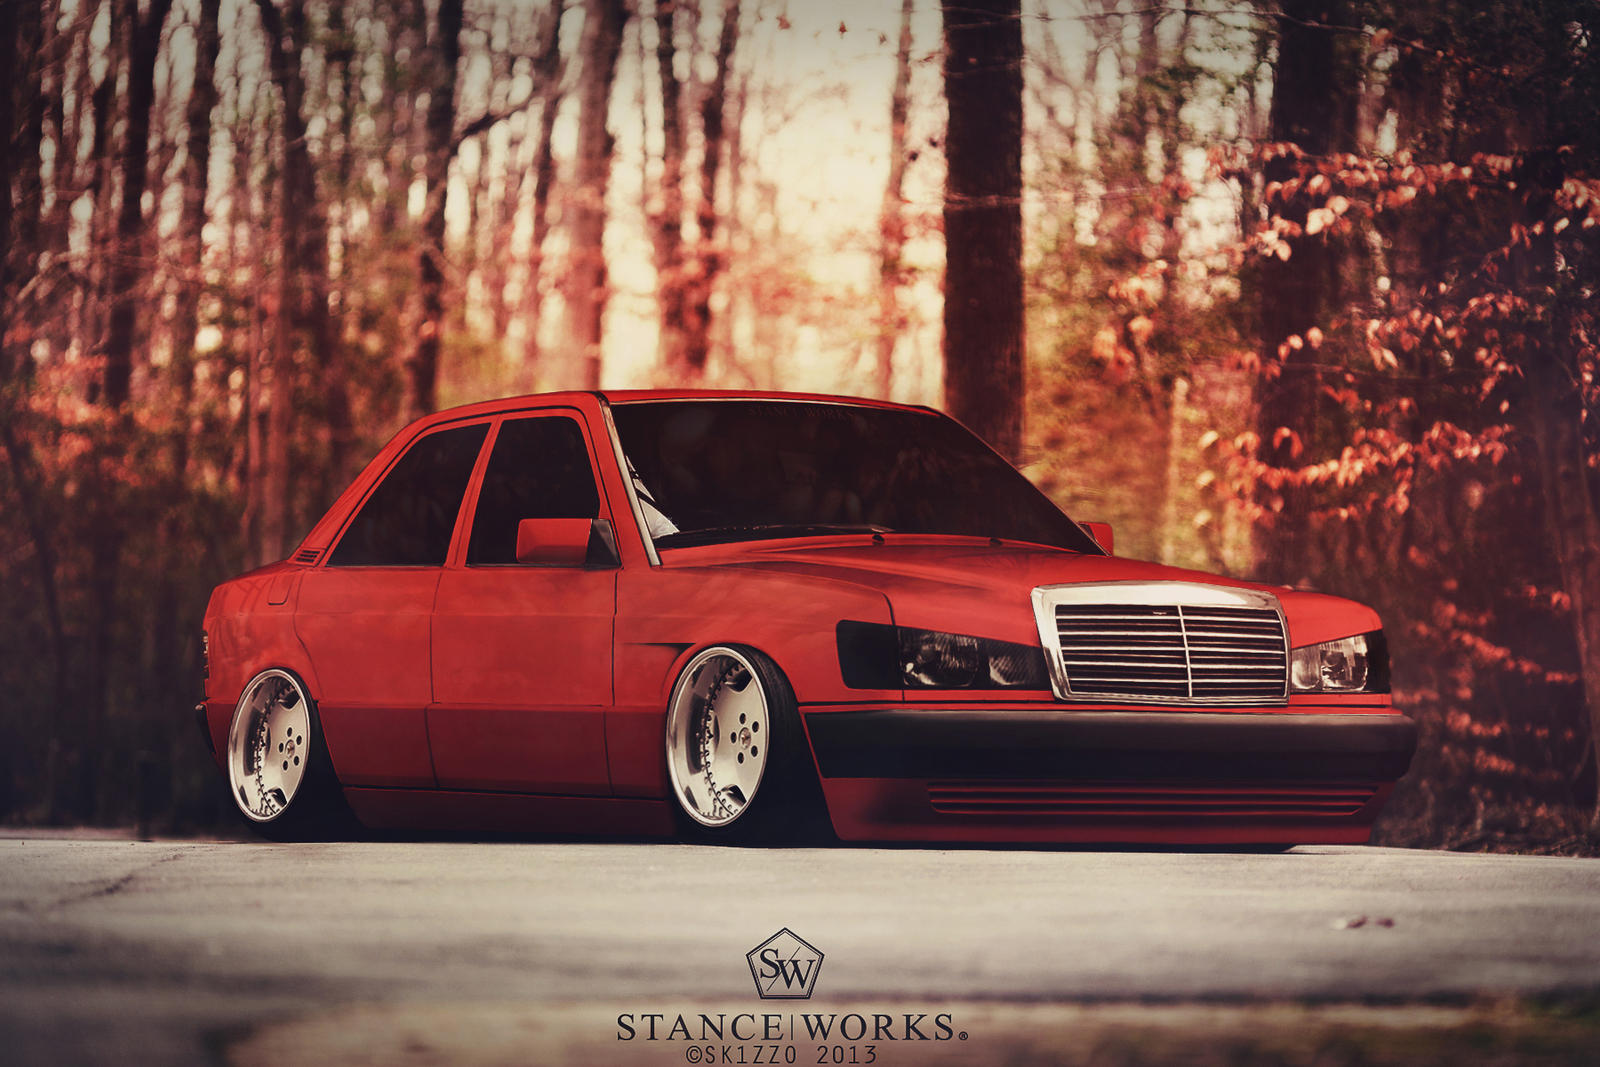 Stanced mercedes benz 190e by sk1zzo on deviantart for Mercedes benz 190 e